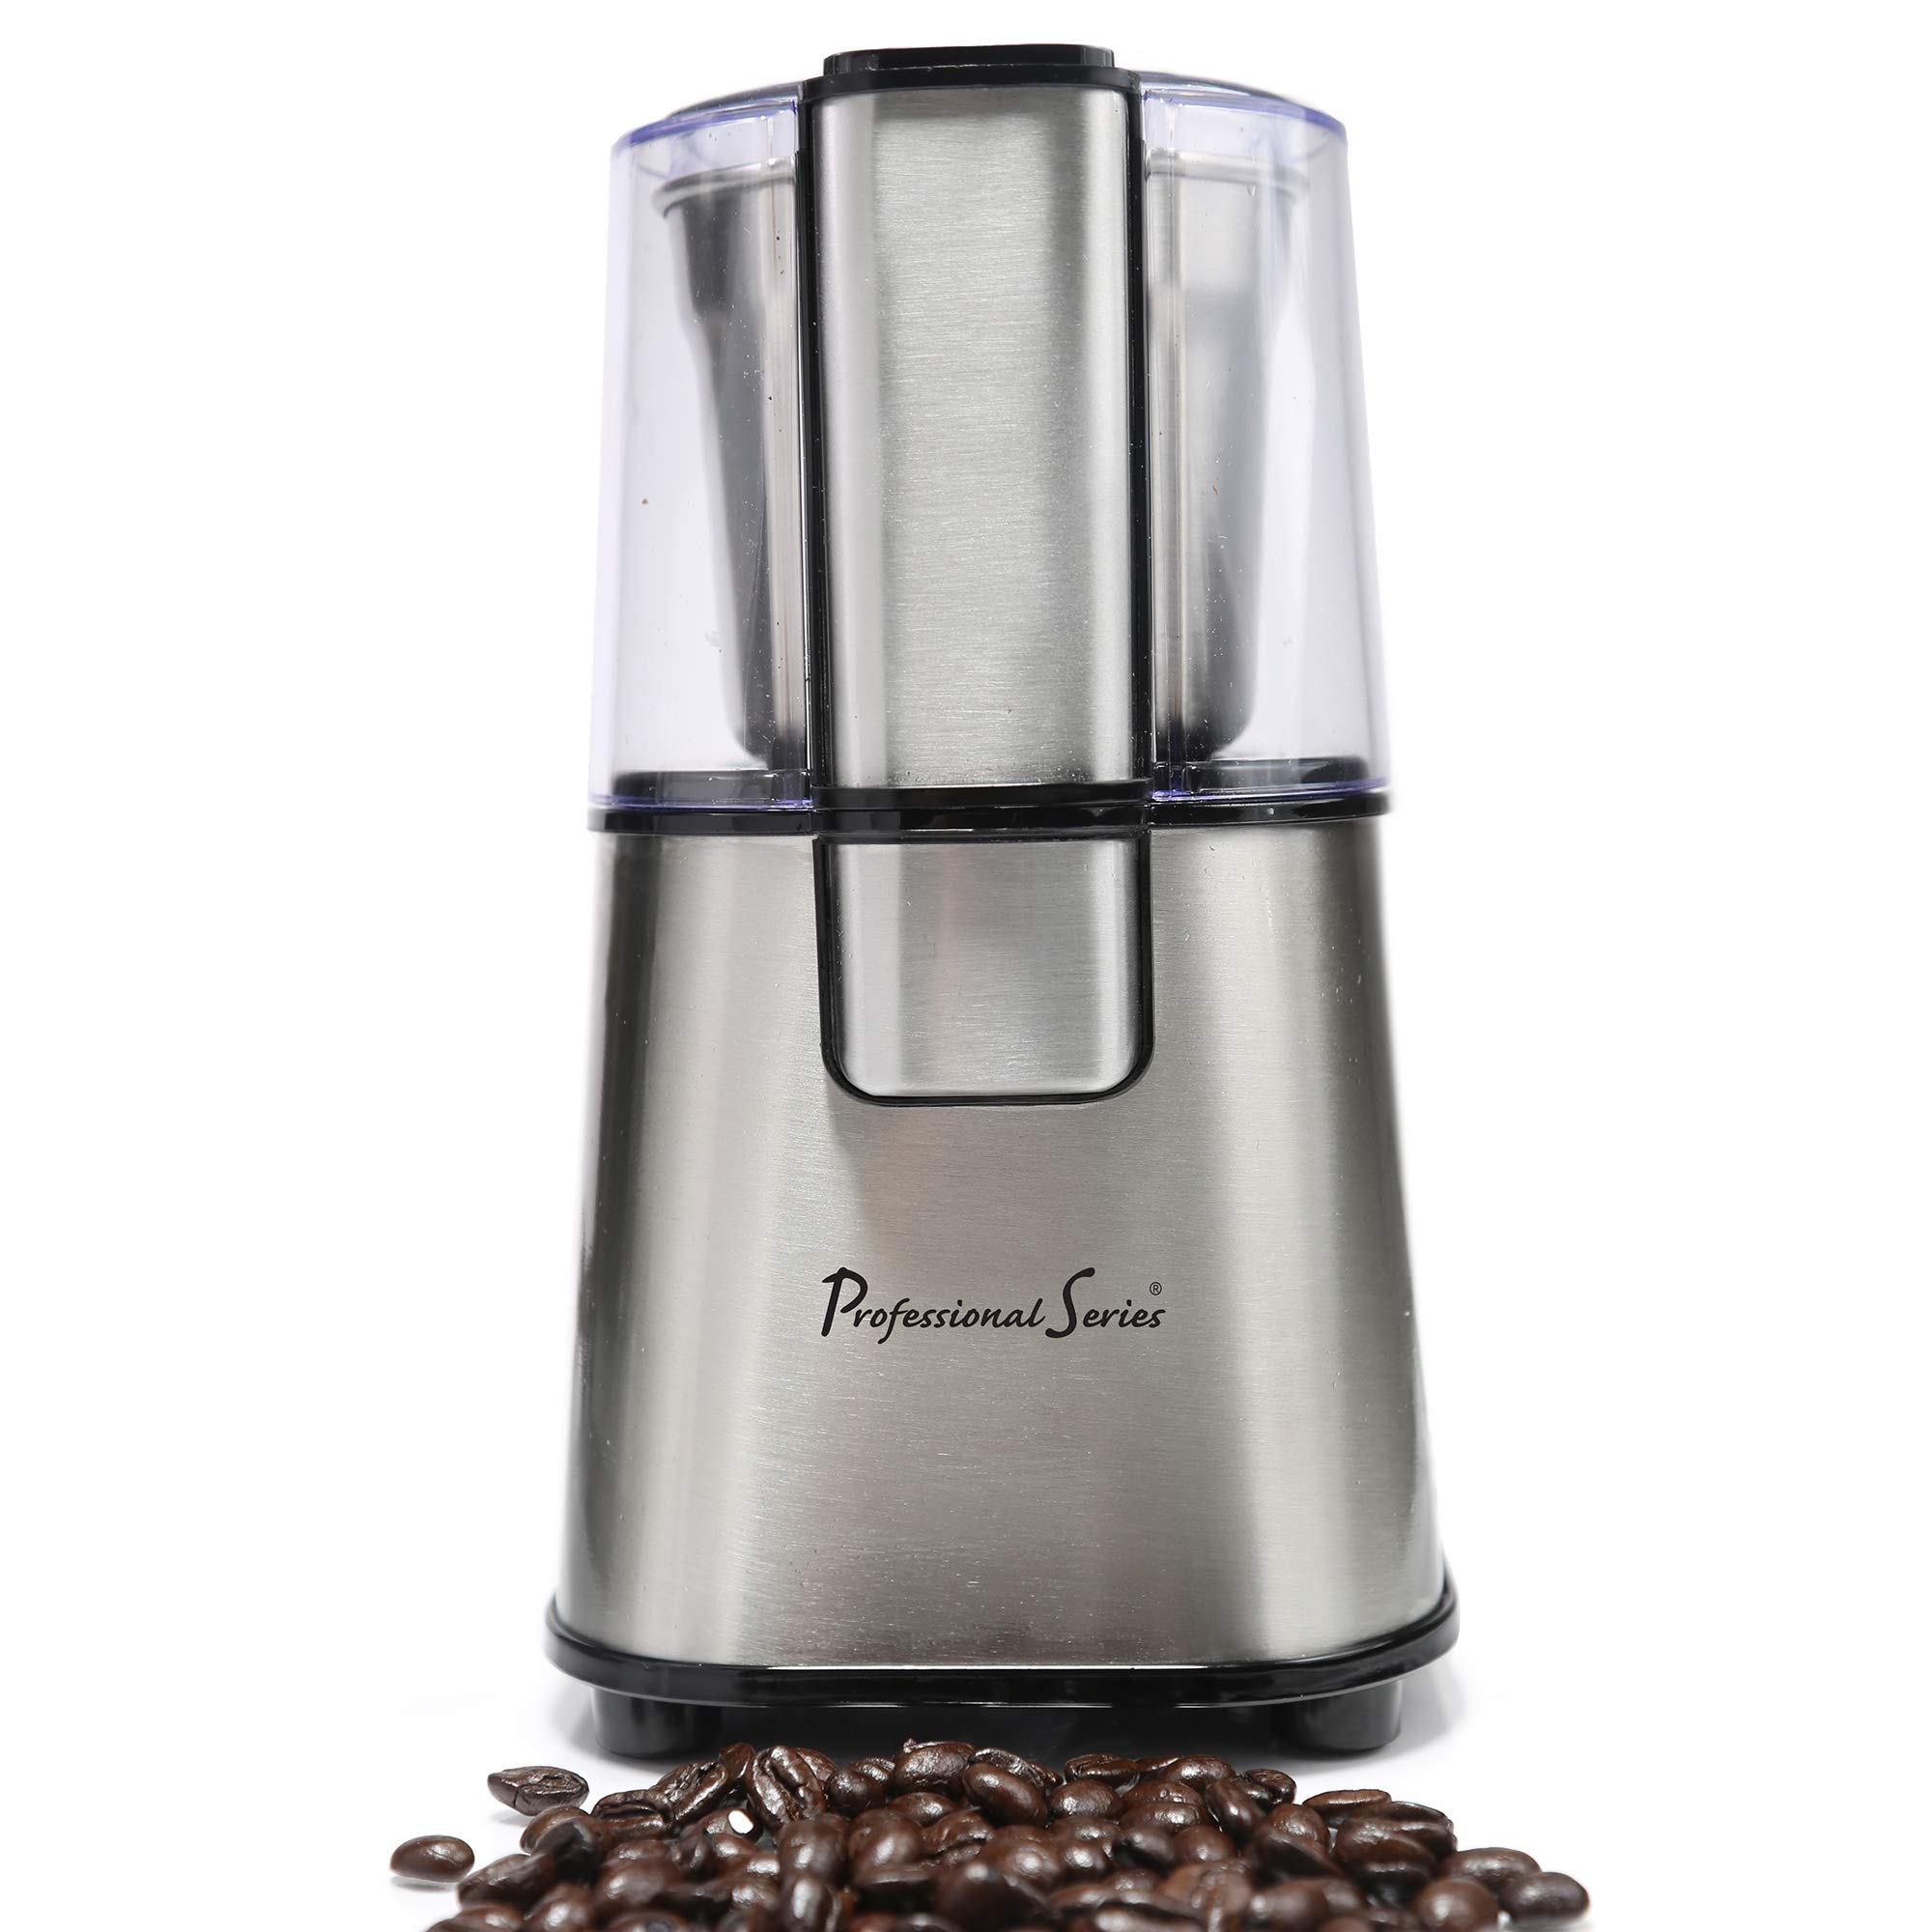 Continental Electric PS-CG008 Electric Grinder, 12-TSP, Stainless Steel by Continental Electric